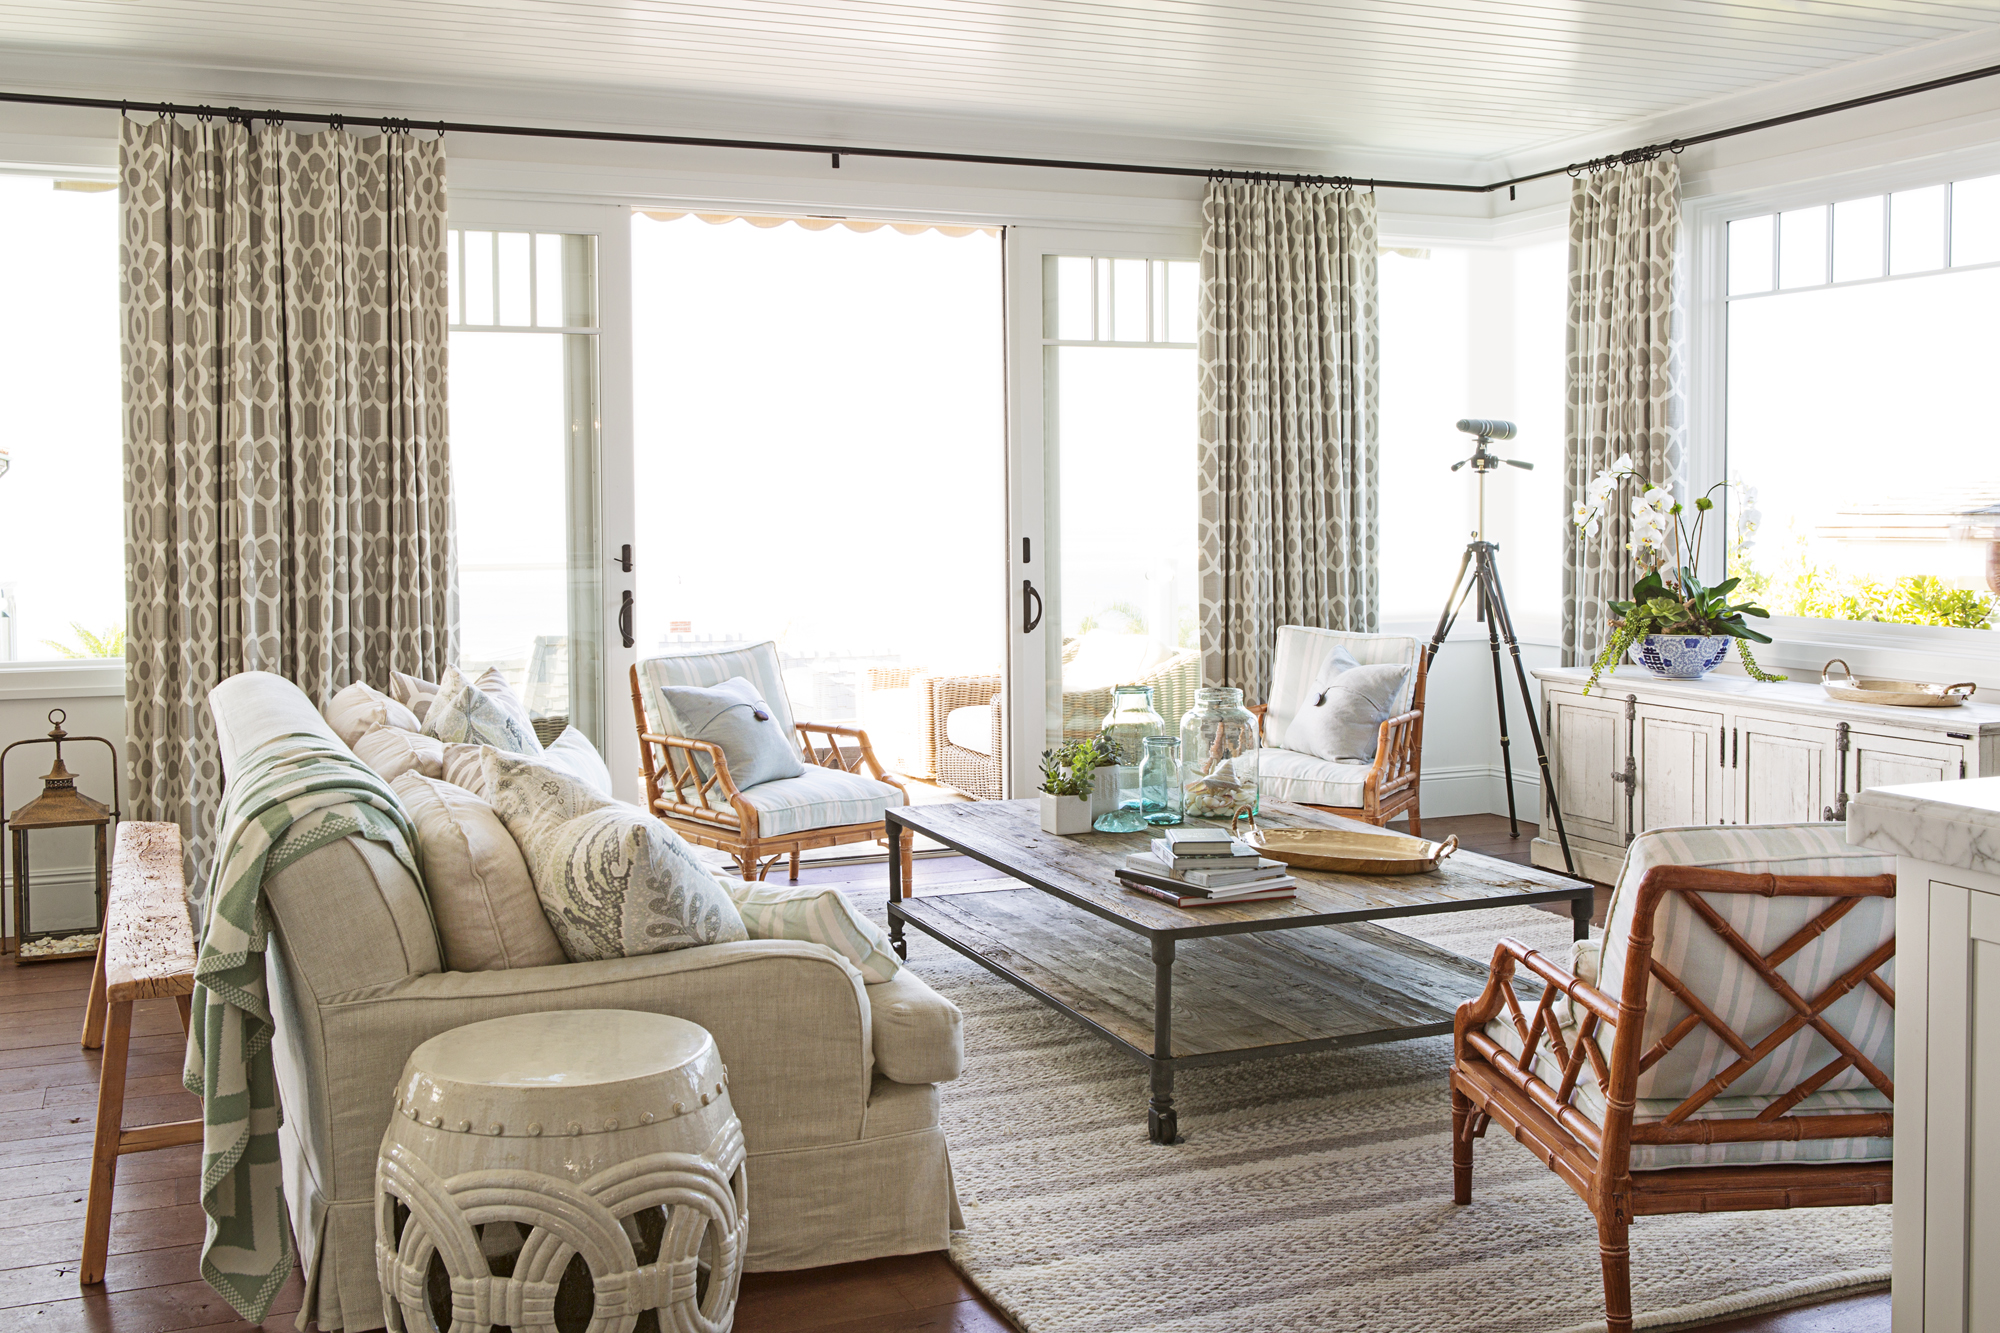 Beach house style coastal decorating tips and tricks - Beach cottage decorating ideas ...